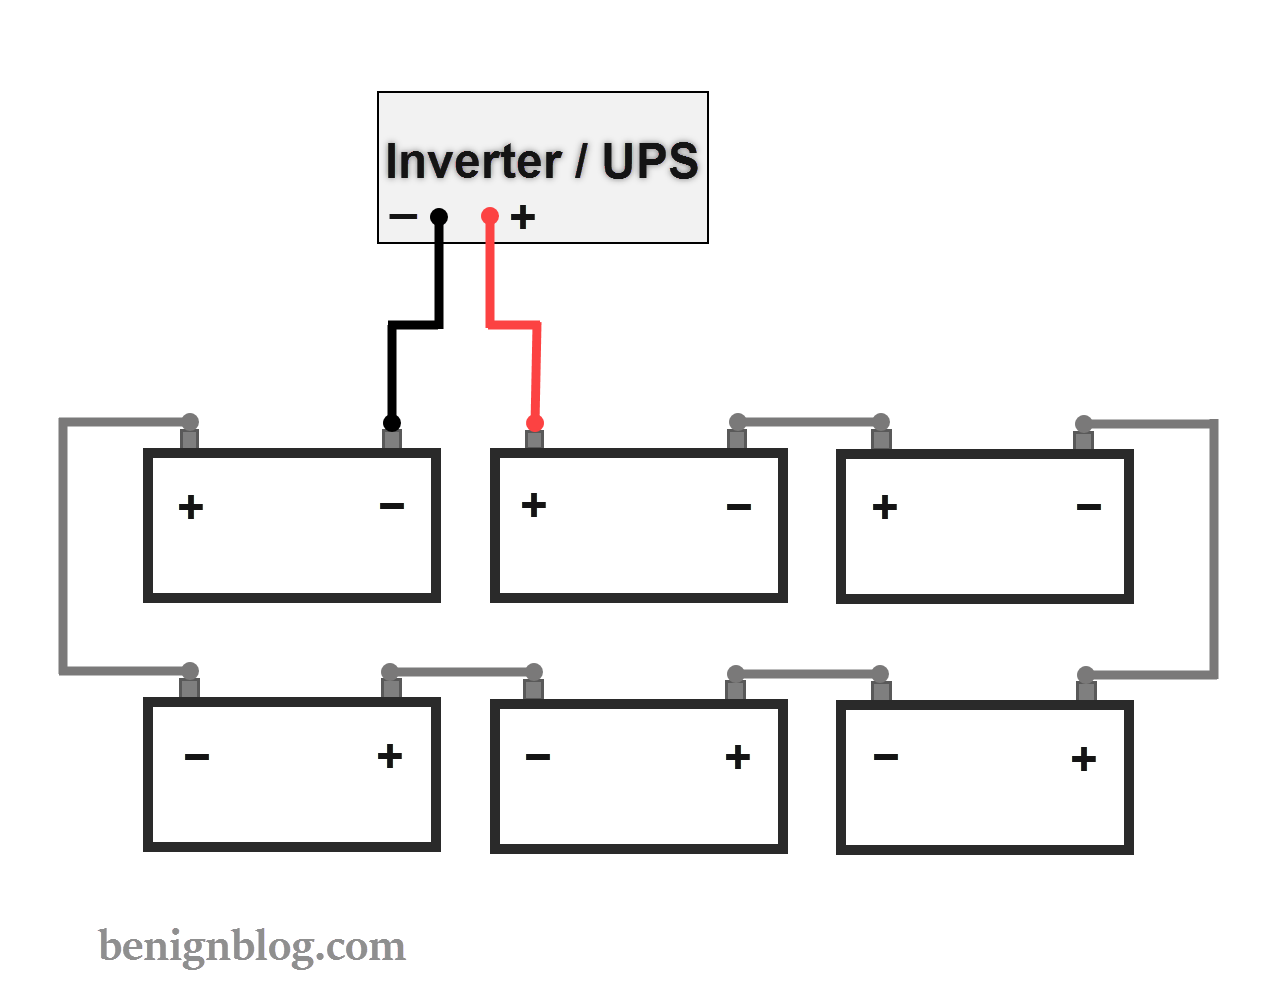 medium resolution of how to connect batteries in series with power inverter or ups 12v inverter battery wiring diagram